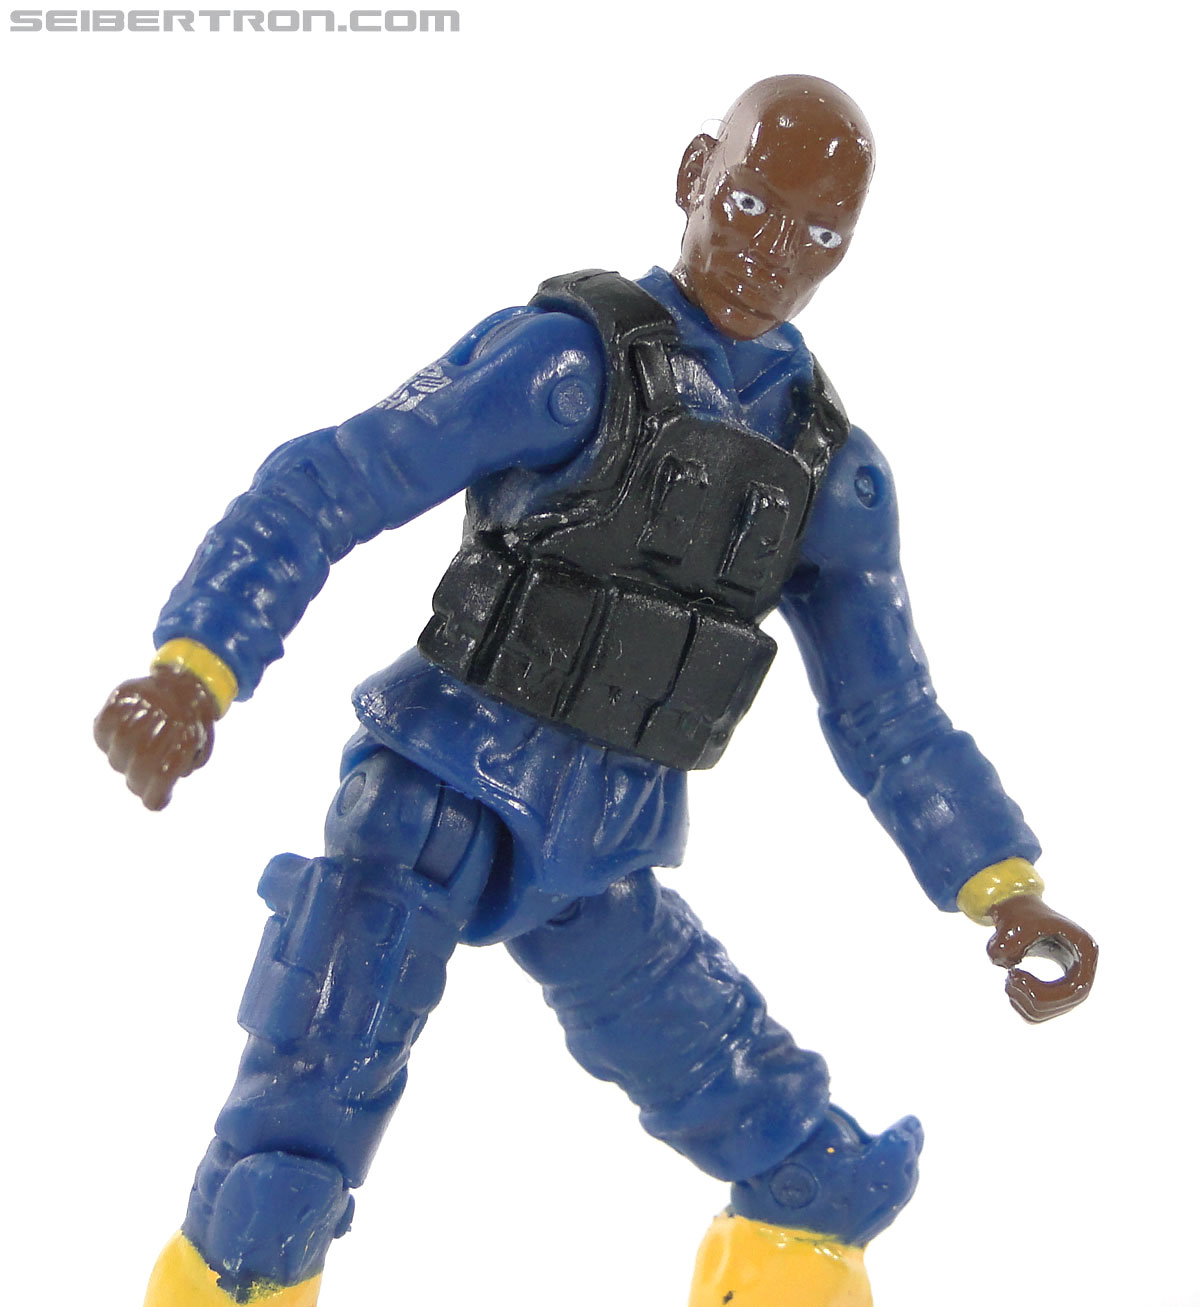 Transformers Dark of the Moon Tech Sergeant Robert Epps (Image #26 of 89)